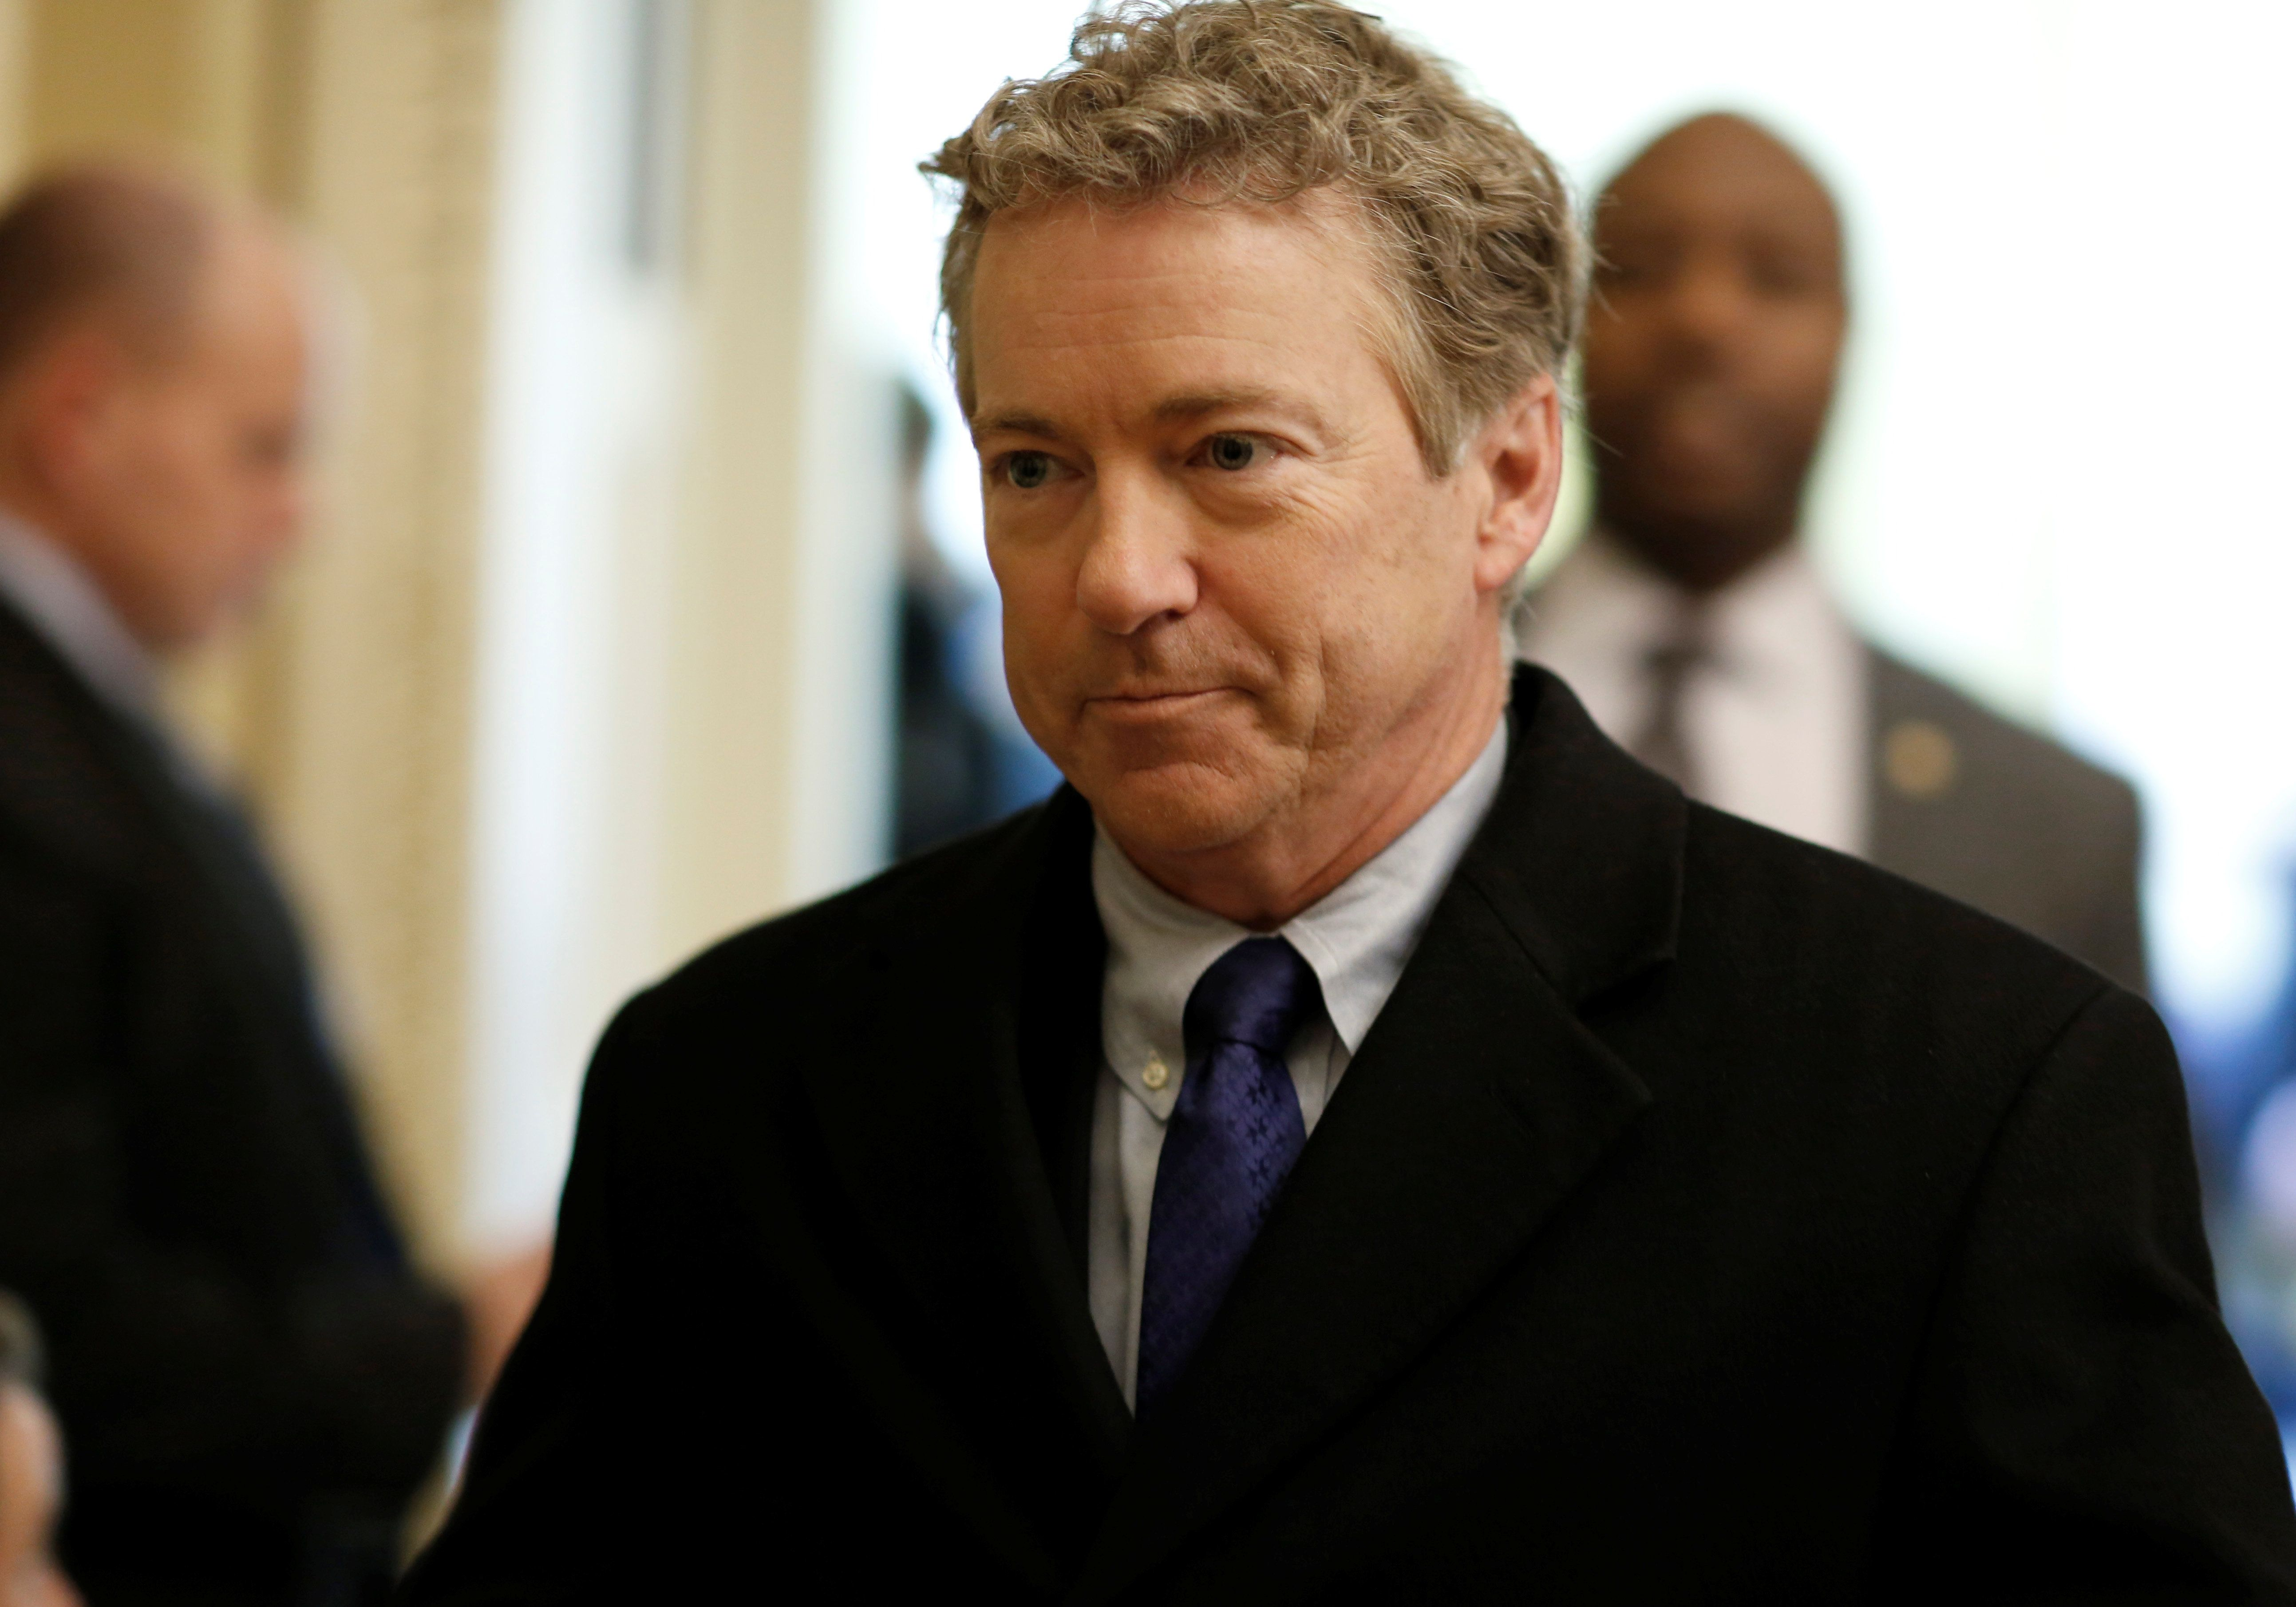 Senator Rand Paul (R-KY) walks from Senate Republican weekly policy luncheon on Capitol Hill in Washington, U.S., March 6, 2018. REUTERS/Joshua Roberts